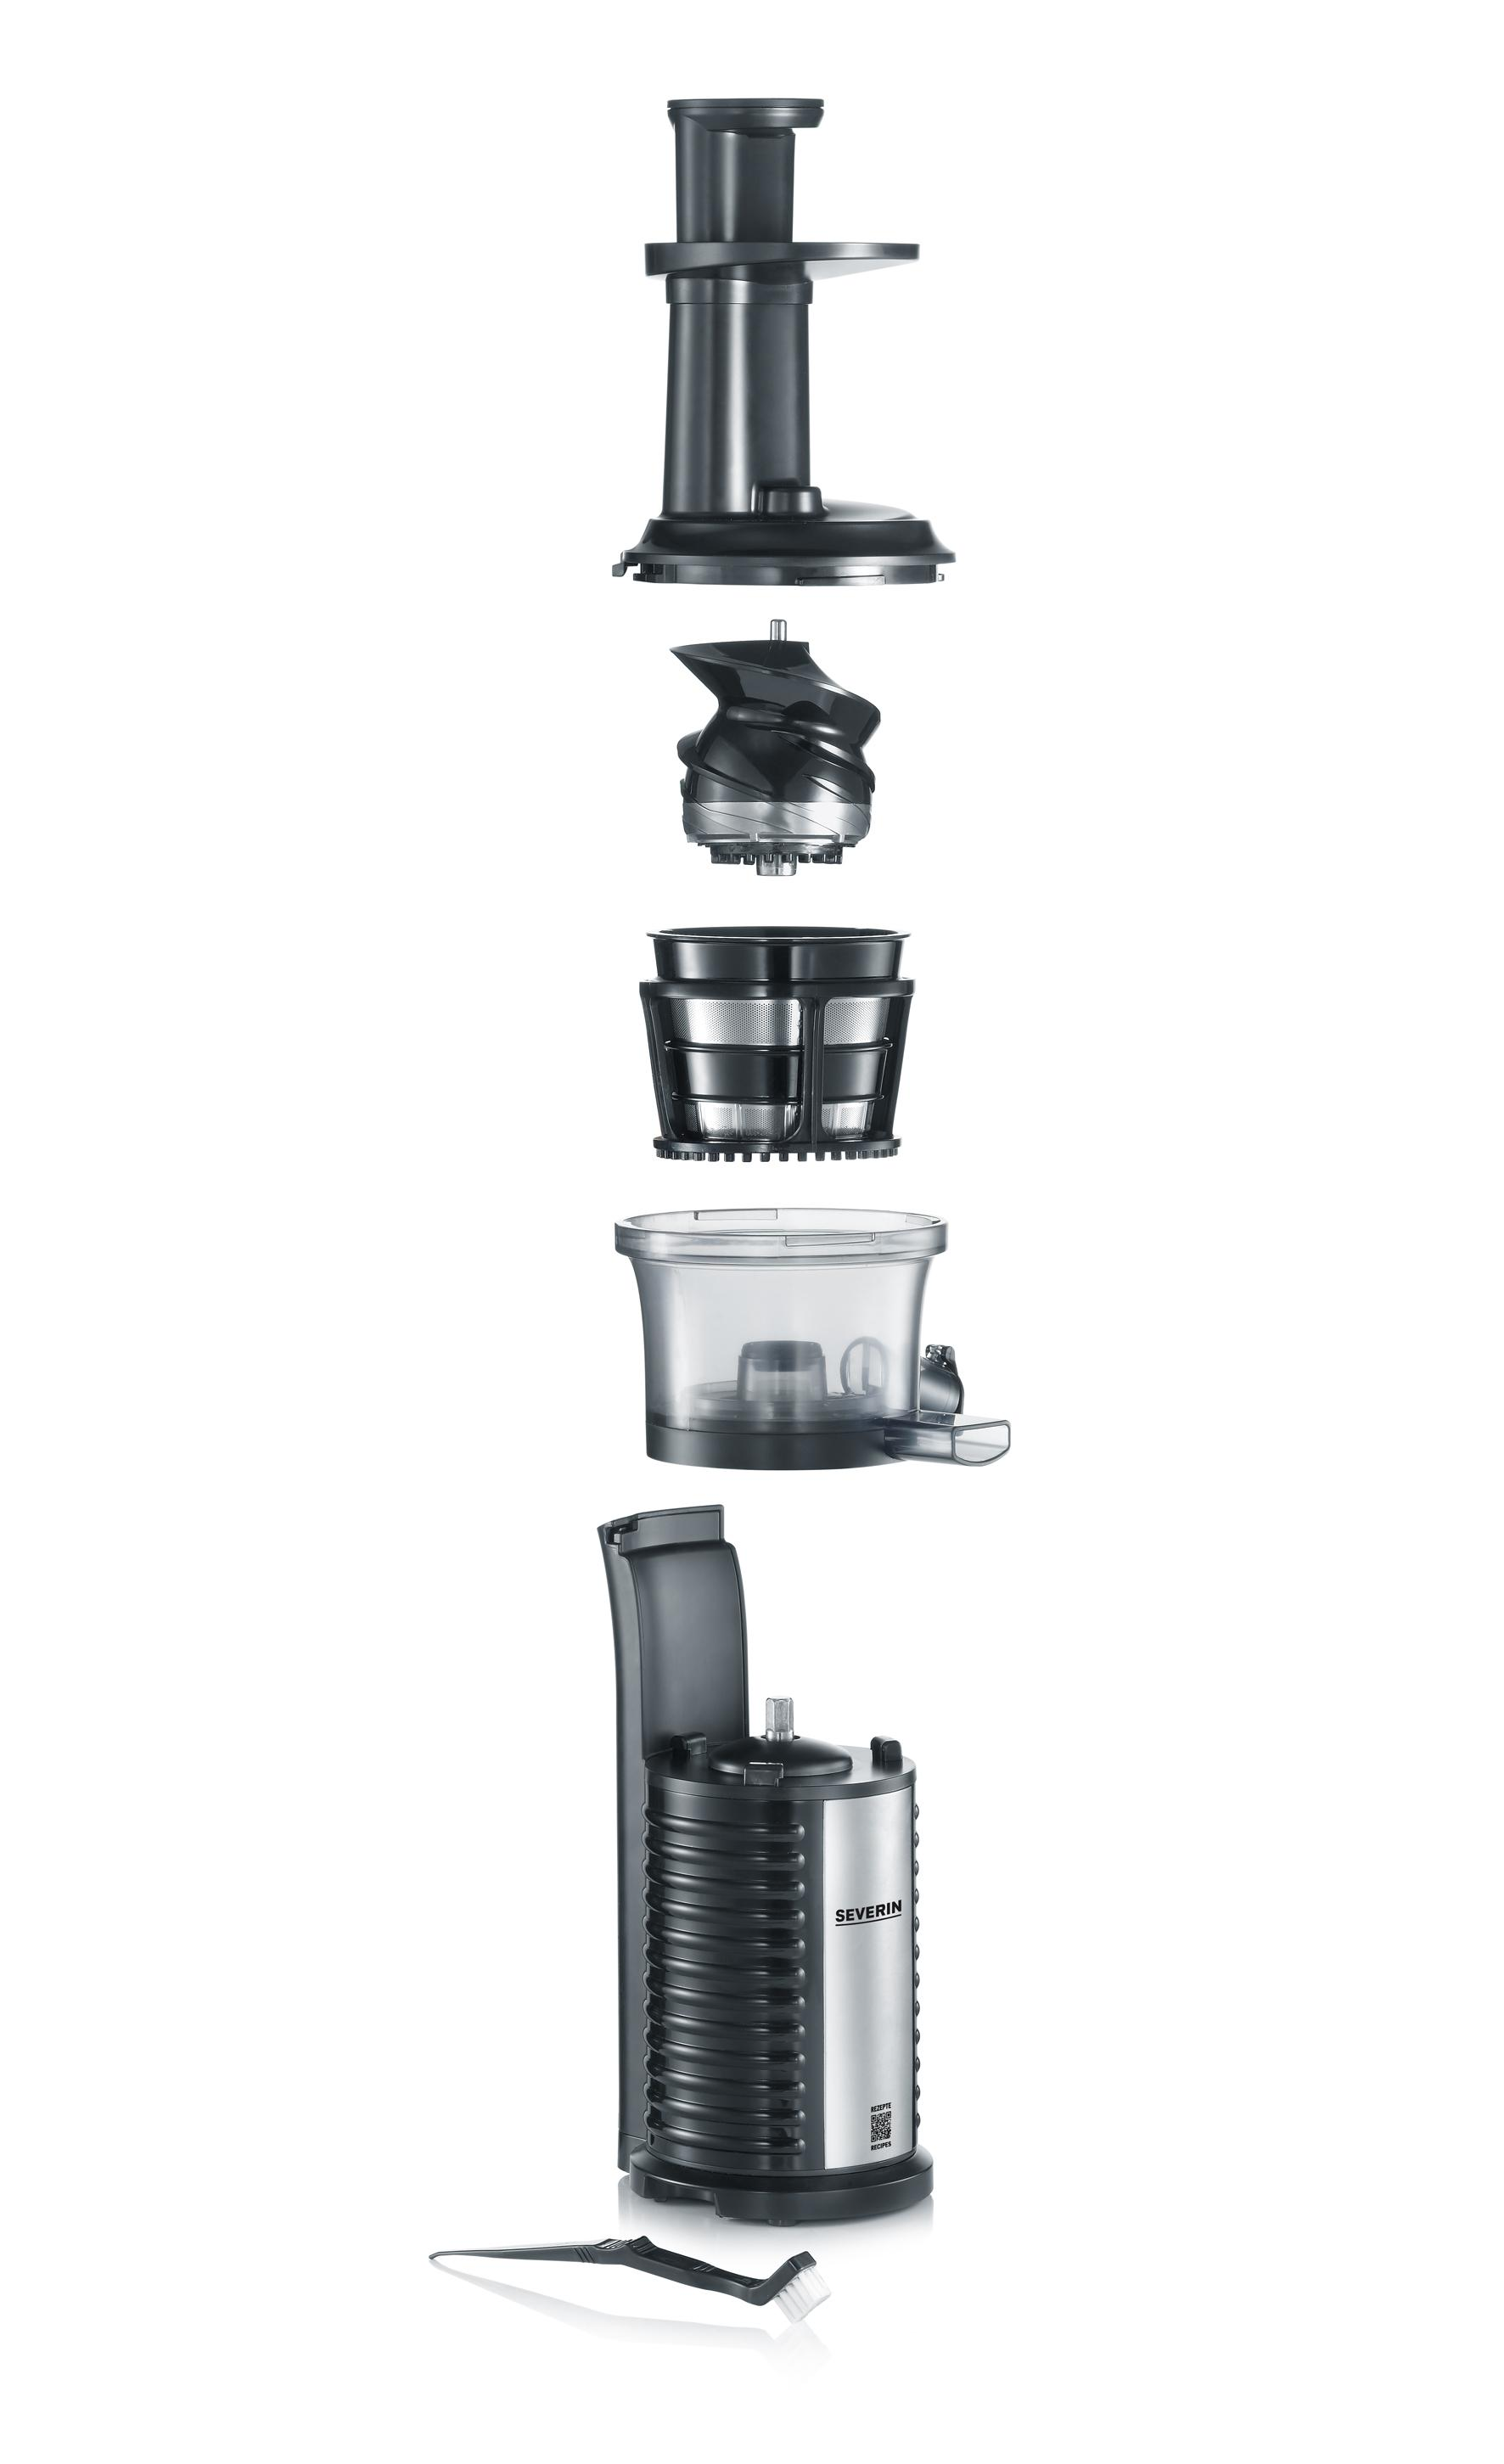 Severin Es 3569 Slow Juicer Prezzi : Severin ES 3569 Slow Juicer Estrattore di Succo senza Lame, BPA free: Amazon.it: Casa e cucina